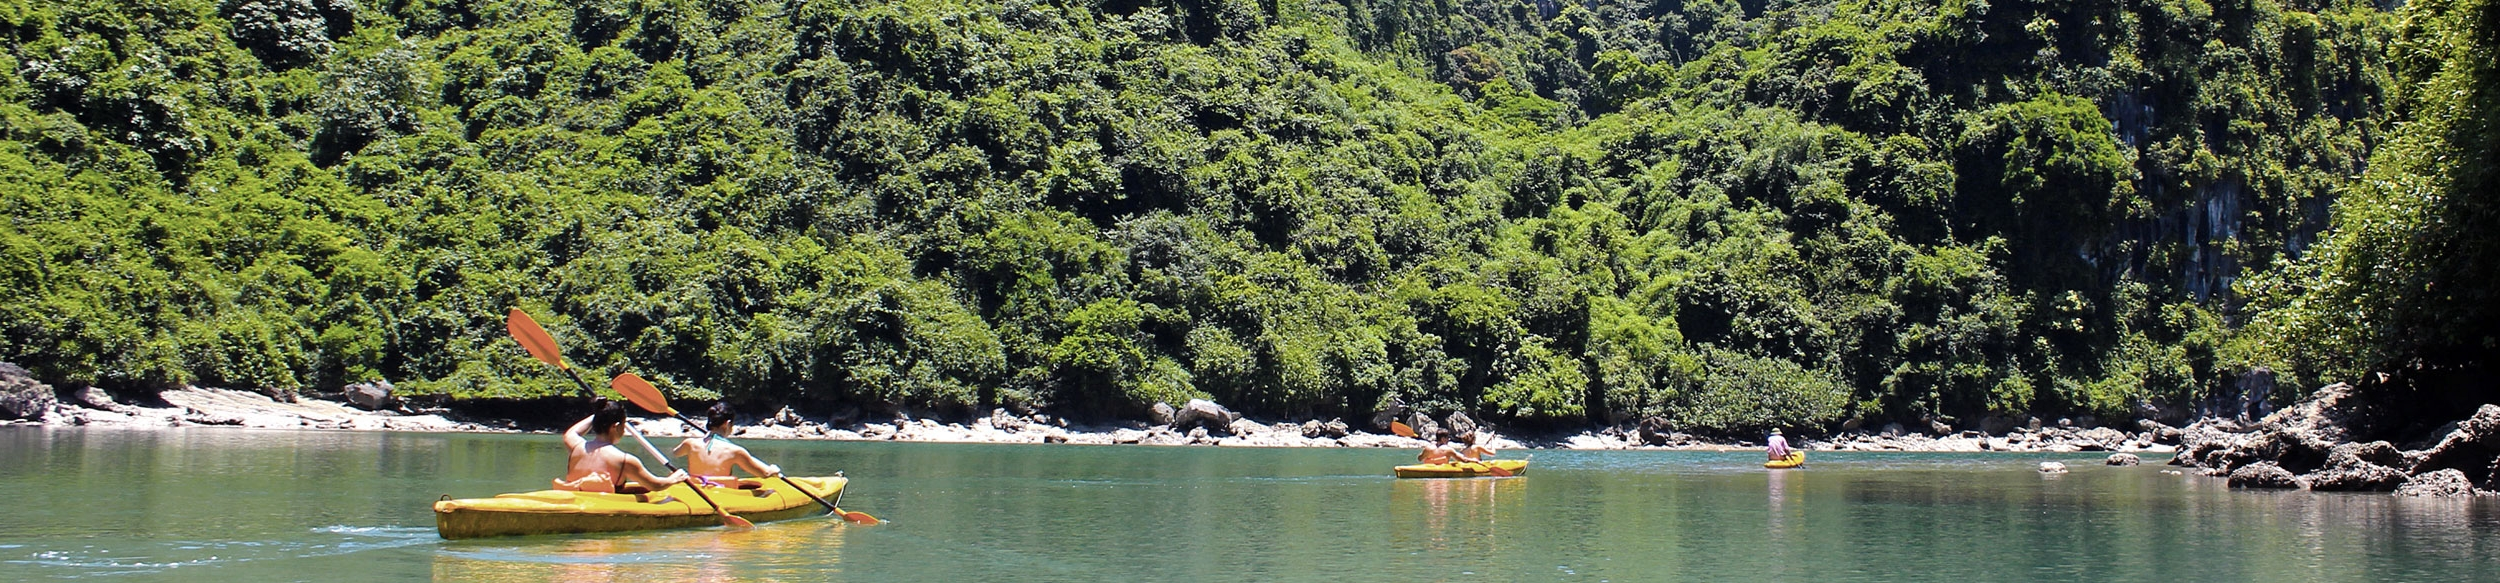 Excursion en kayak dans la baie d'Halong au Vietnam